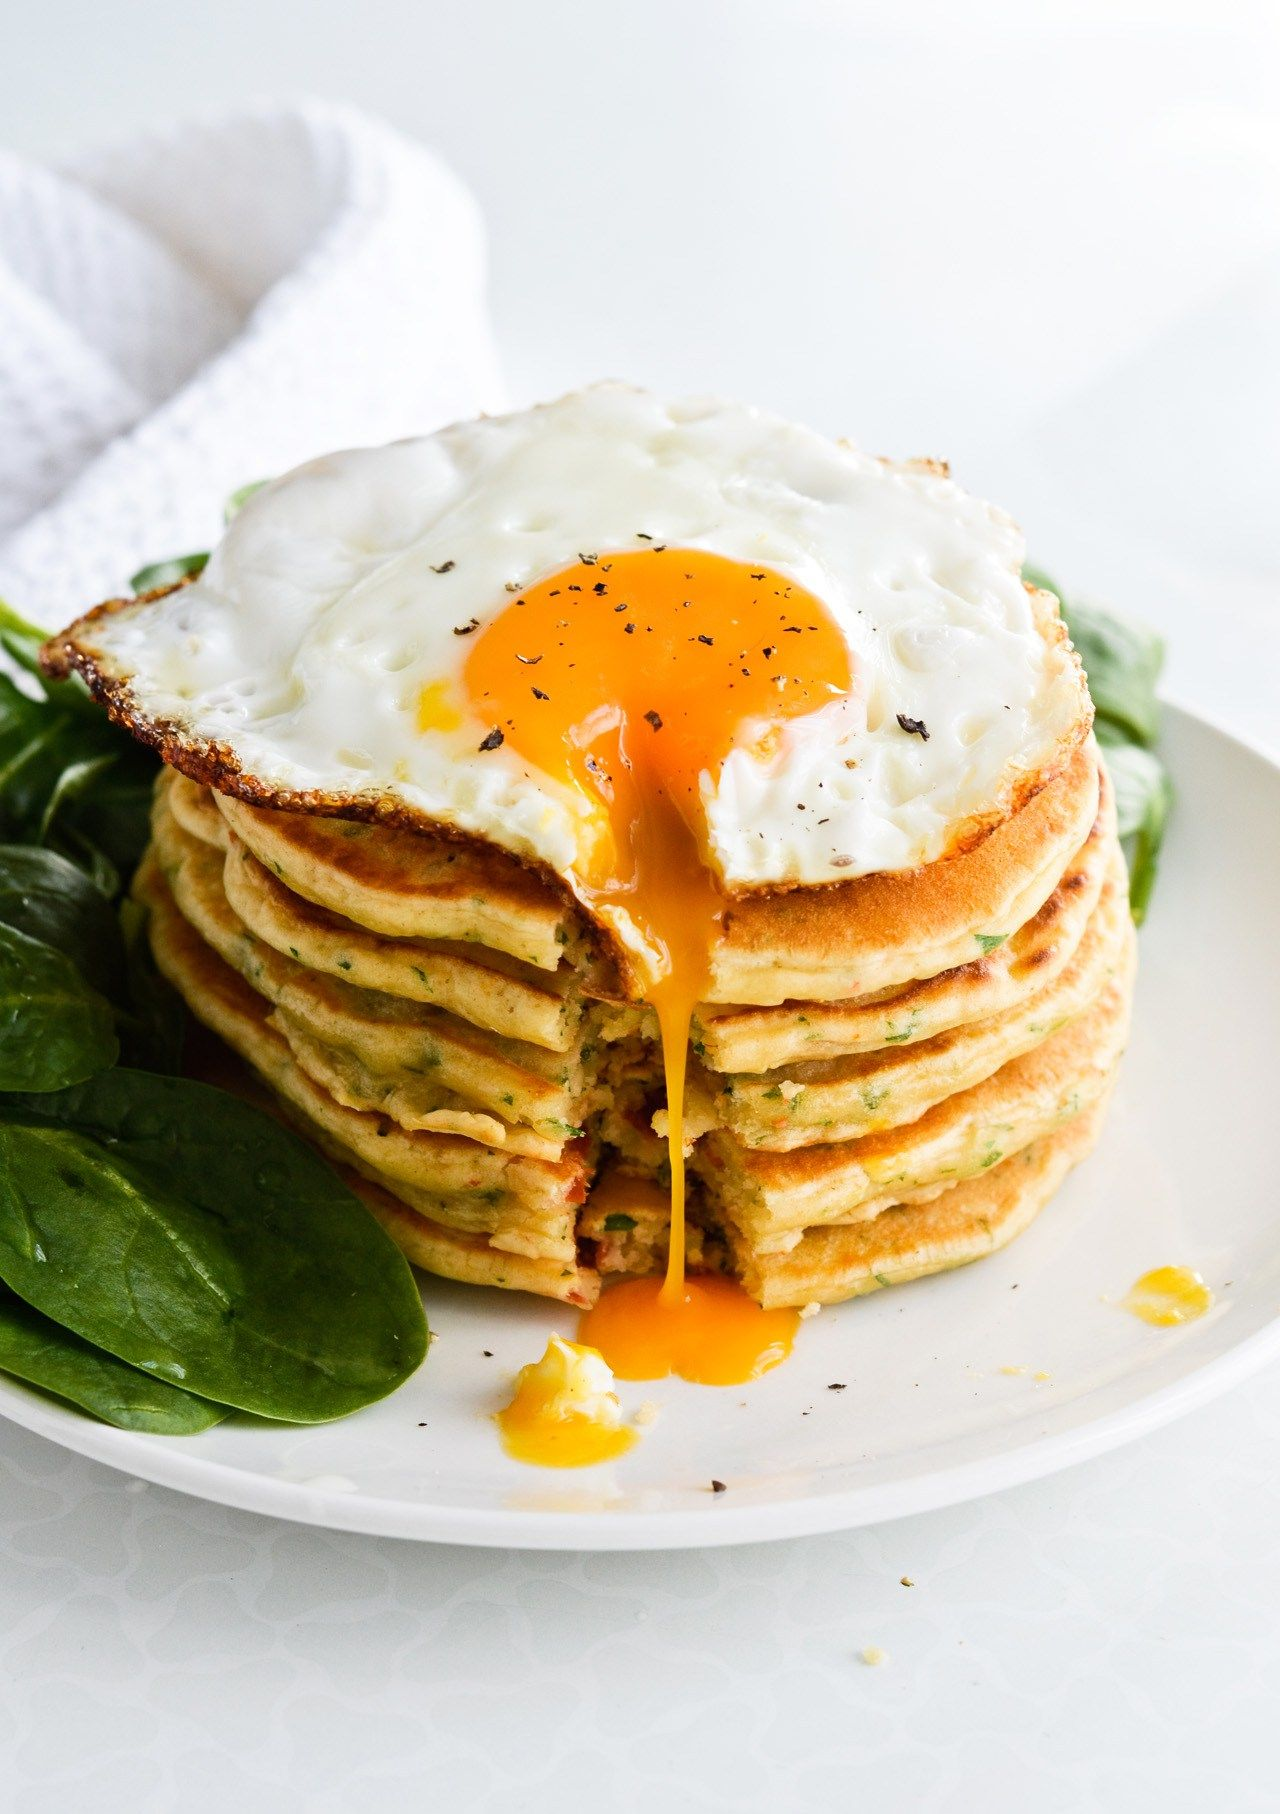 Savory Pancakes With A Fried Egg And Spinach Recipe Savory Pancakes Savoury Pancake Recipe Food